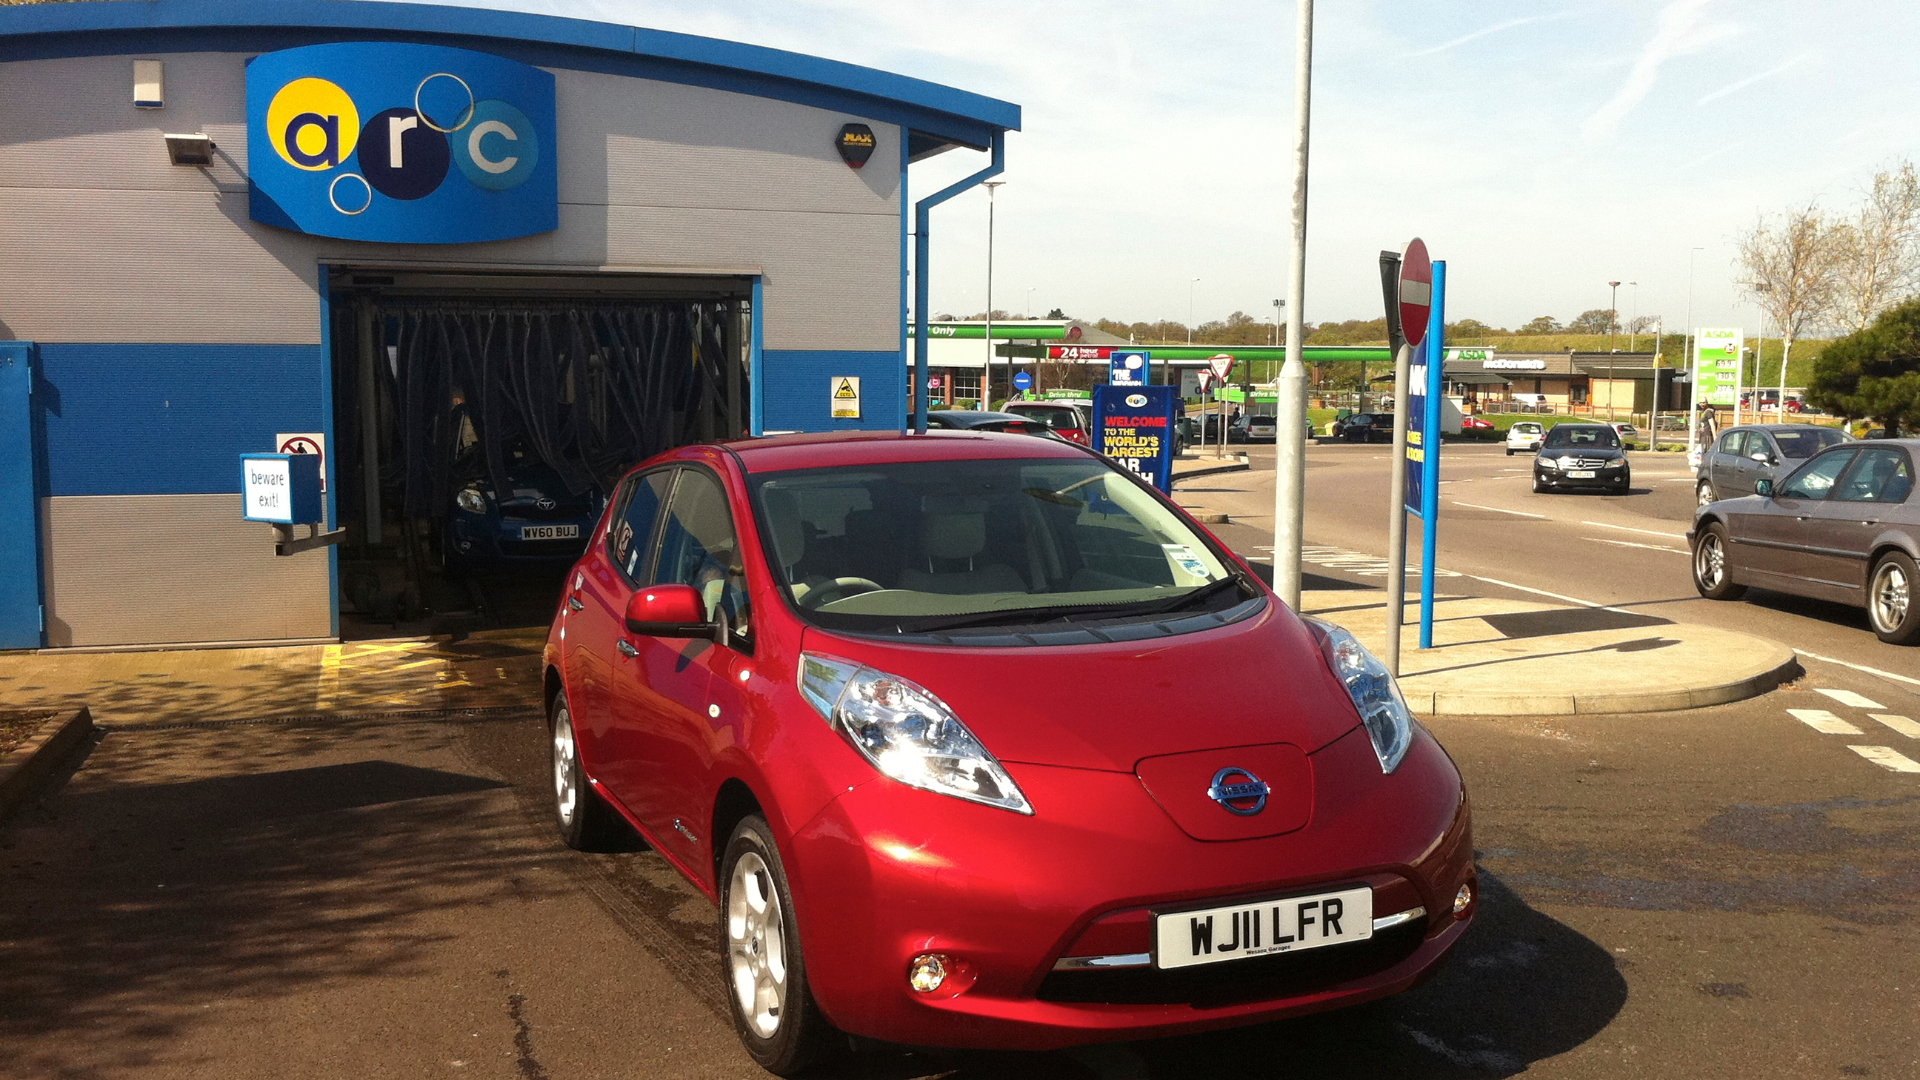 2011 Nissan Leaf in Car Wash